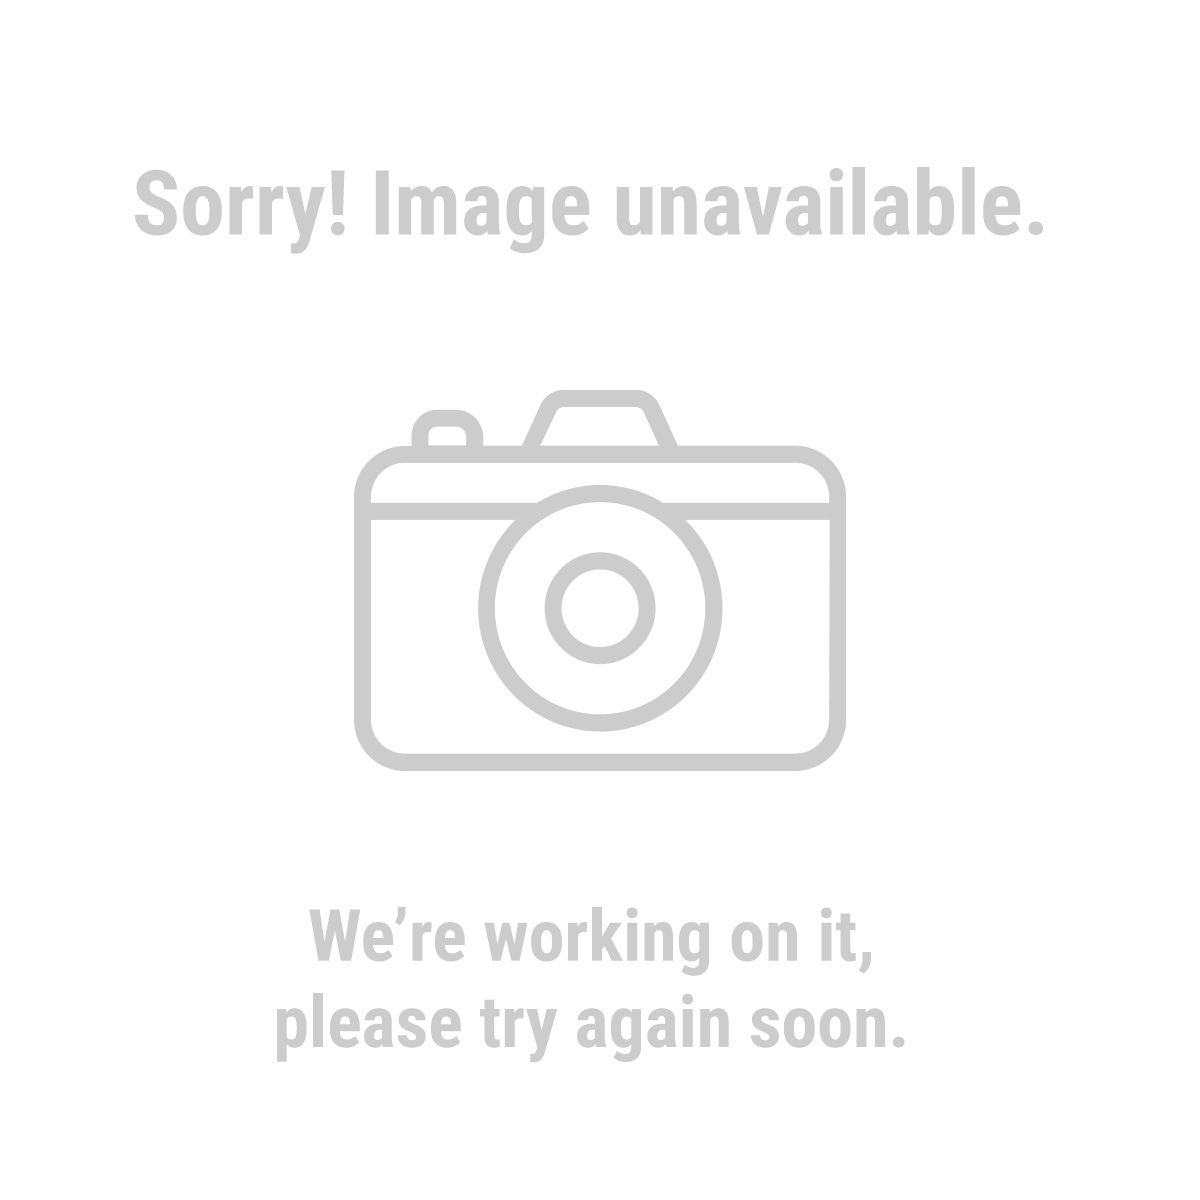 Central-Machinery 96008 Stand for Shrinker and Stretcher Machines